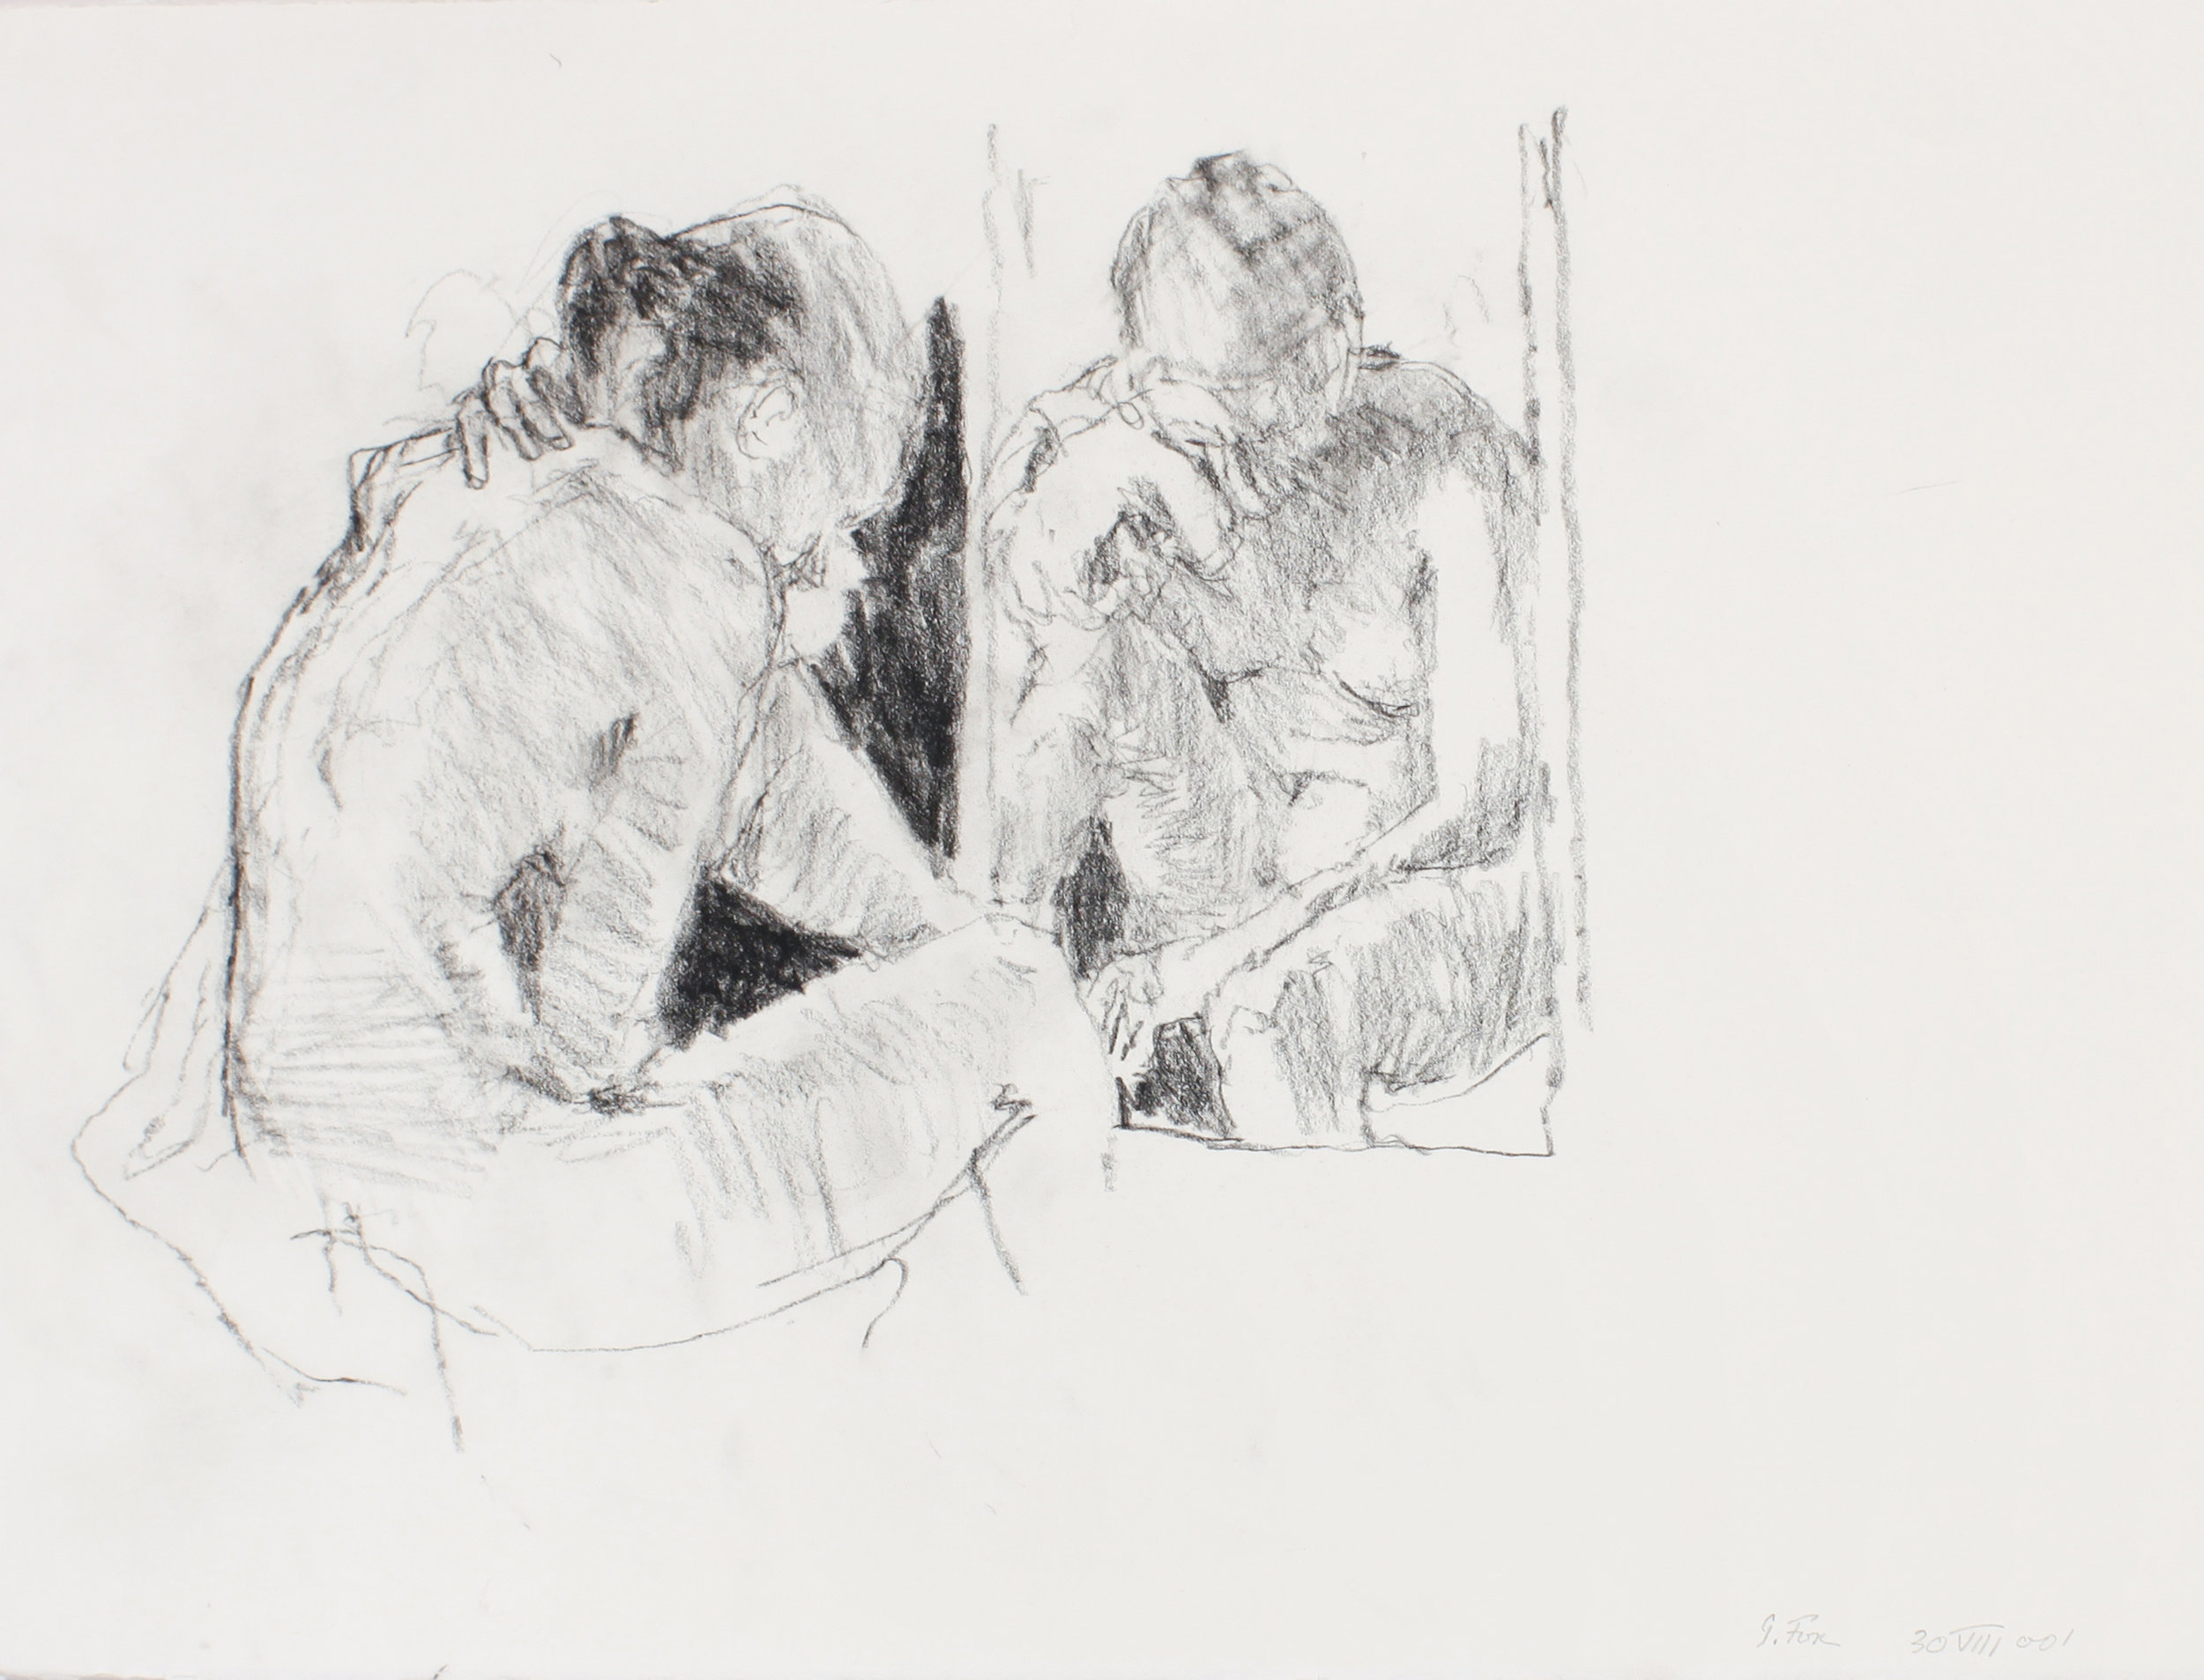 2001_Seated_Nude_with_Refelction_charcoal_on_paper_11x15in_WPF518.jpg